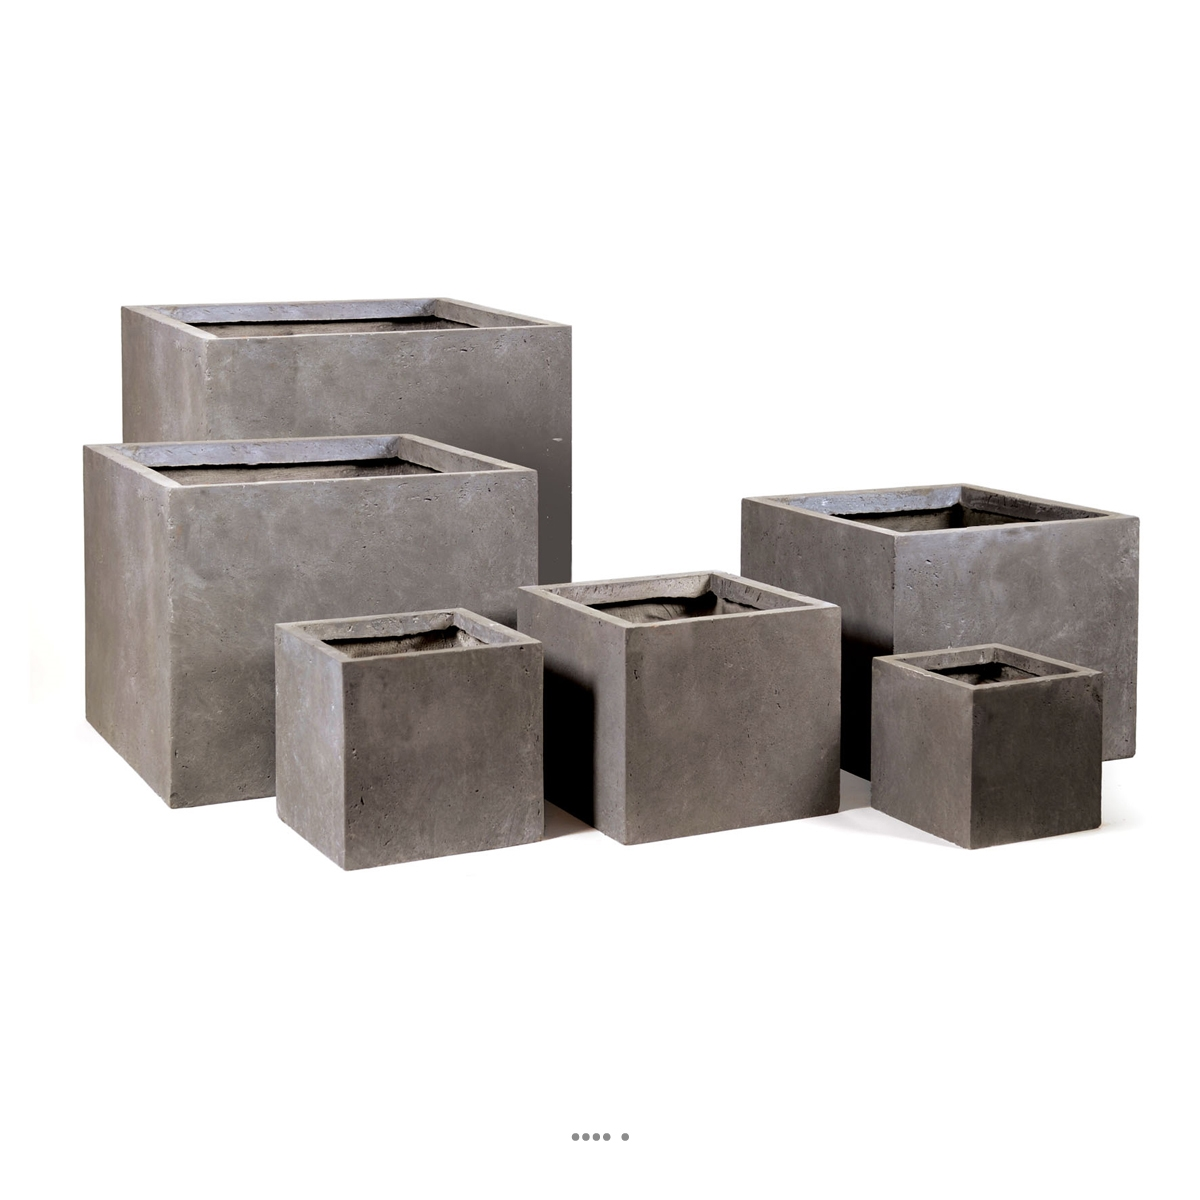 bac cube fibre de terre taupe pour ext rieur terrasse et jardin du site. Black Bedroom Furniture Sets. Home Design Ideas